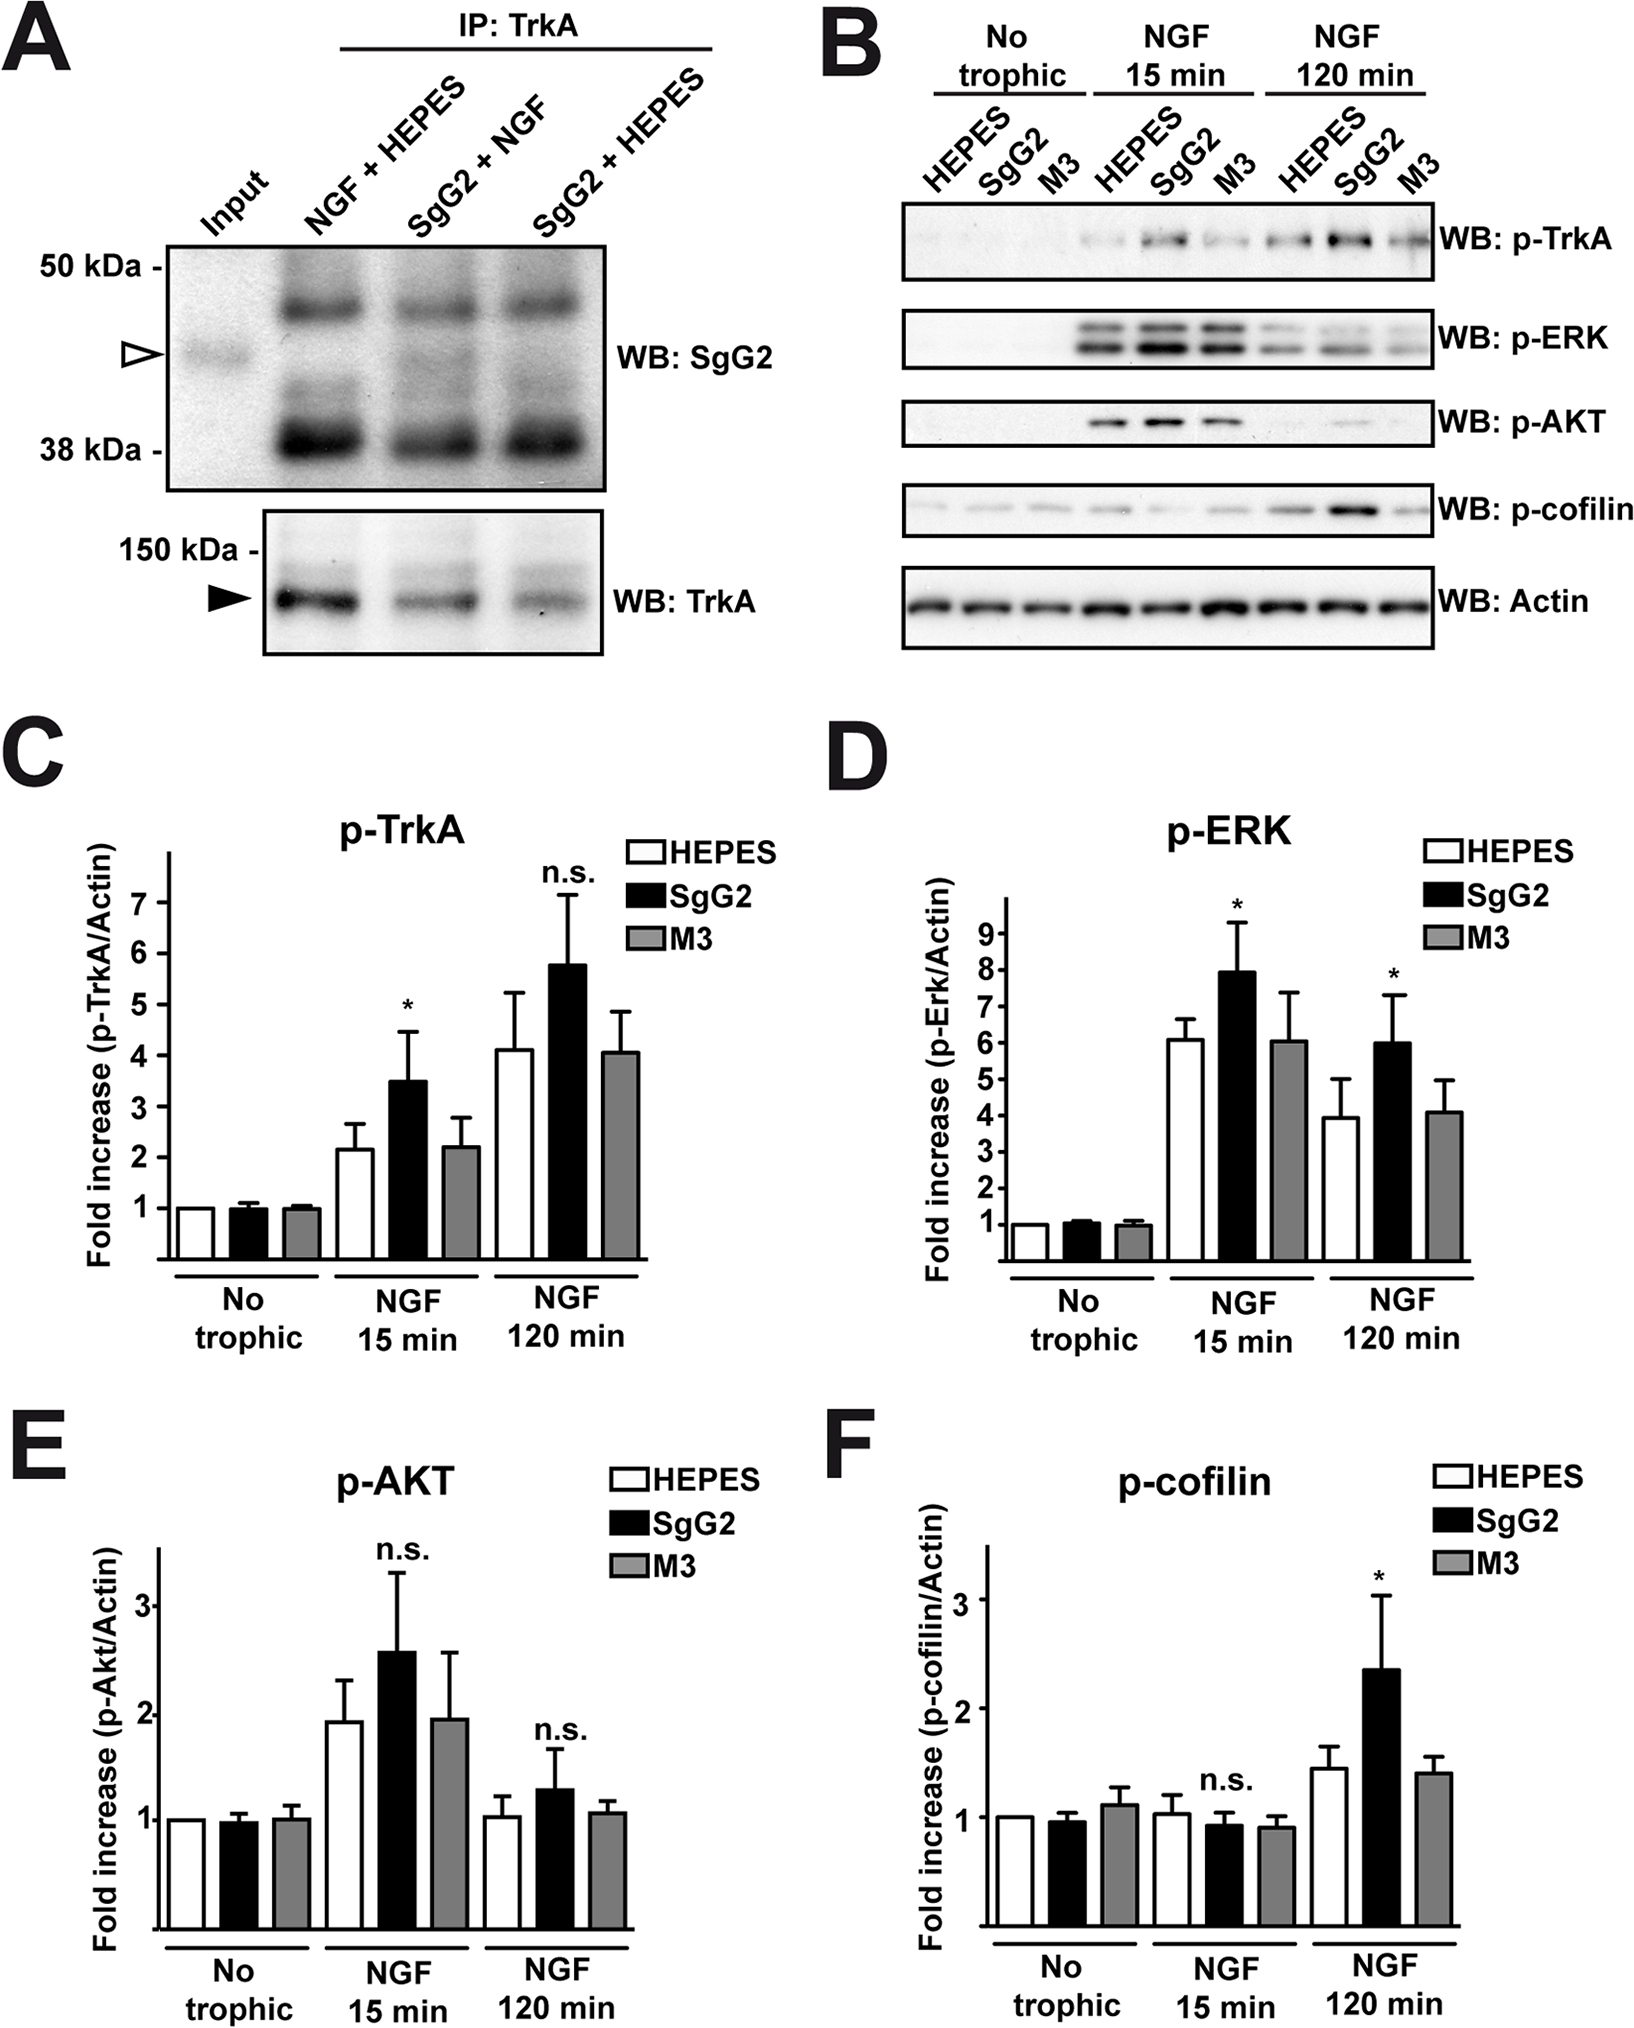 SgG2 modifies NGF-TrkA signaling.